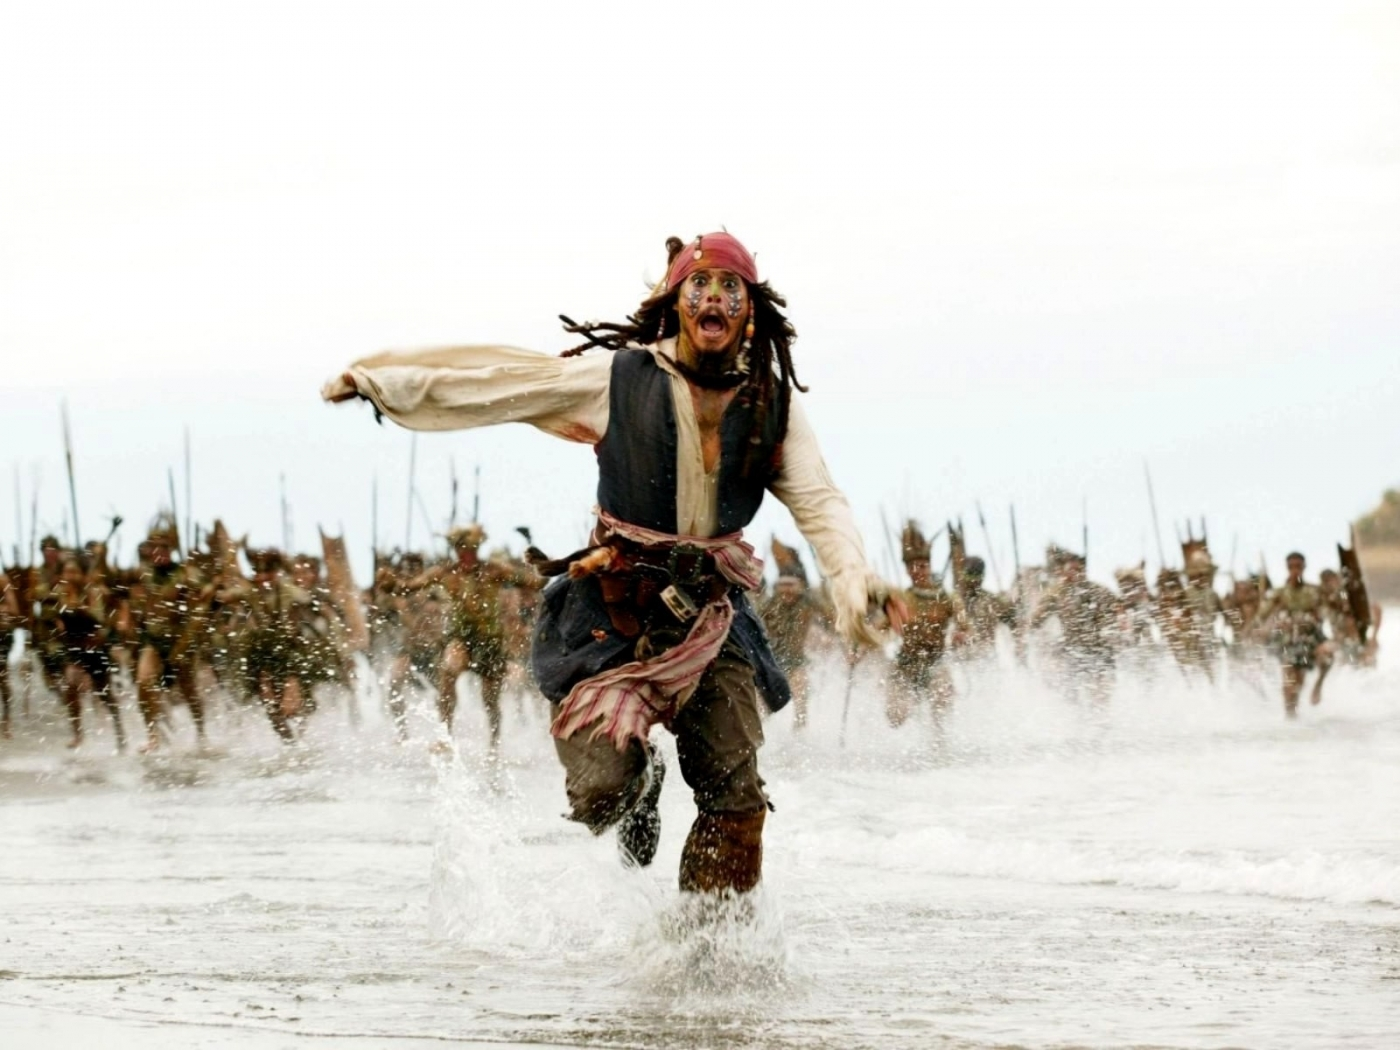 50176 download wallpaper Cinema, People, Men, Pirates Of The Caribbean screensavers and pictures for free